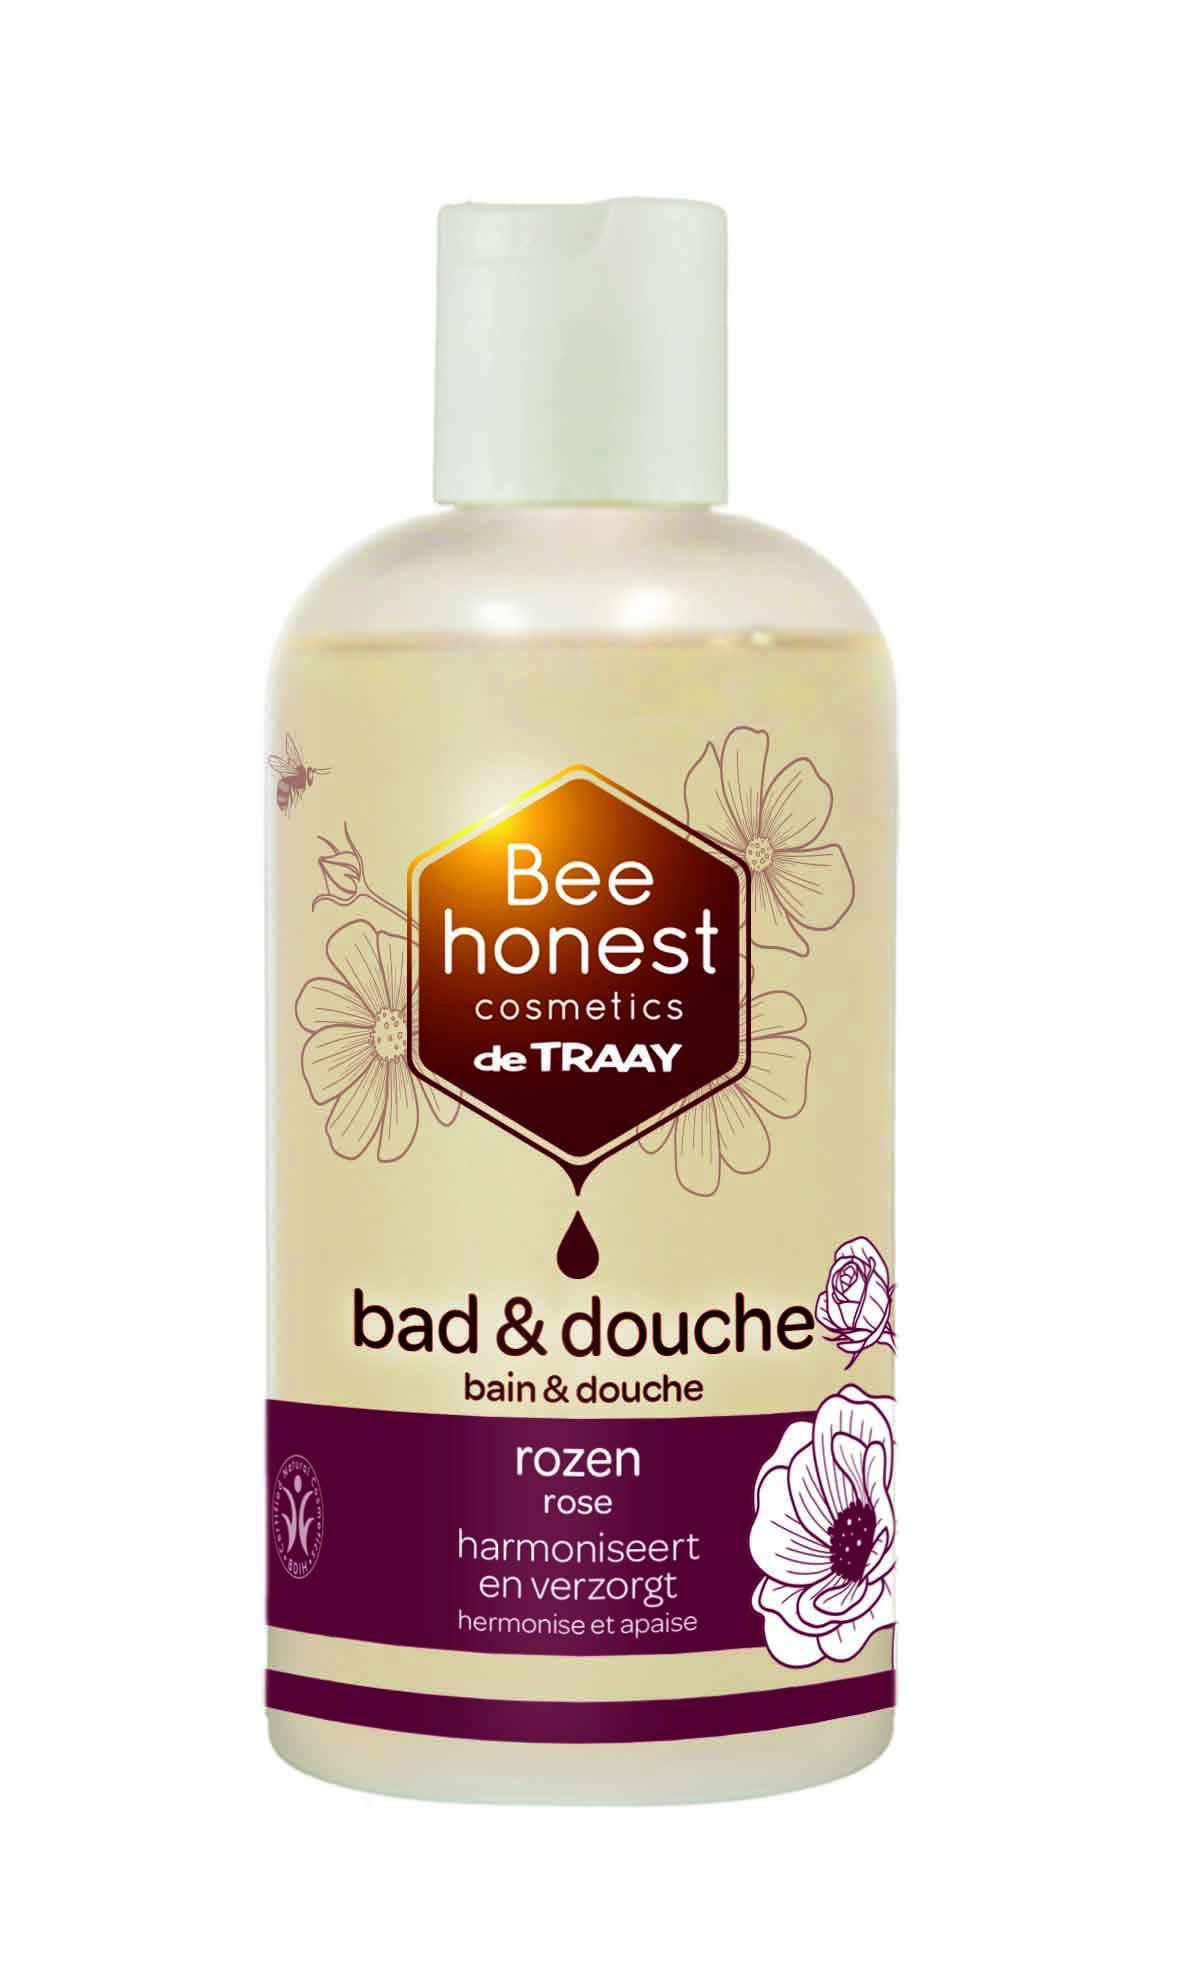 Bad & douche rozen 250ml